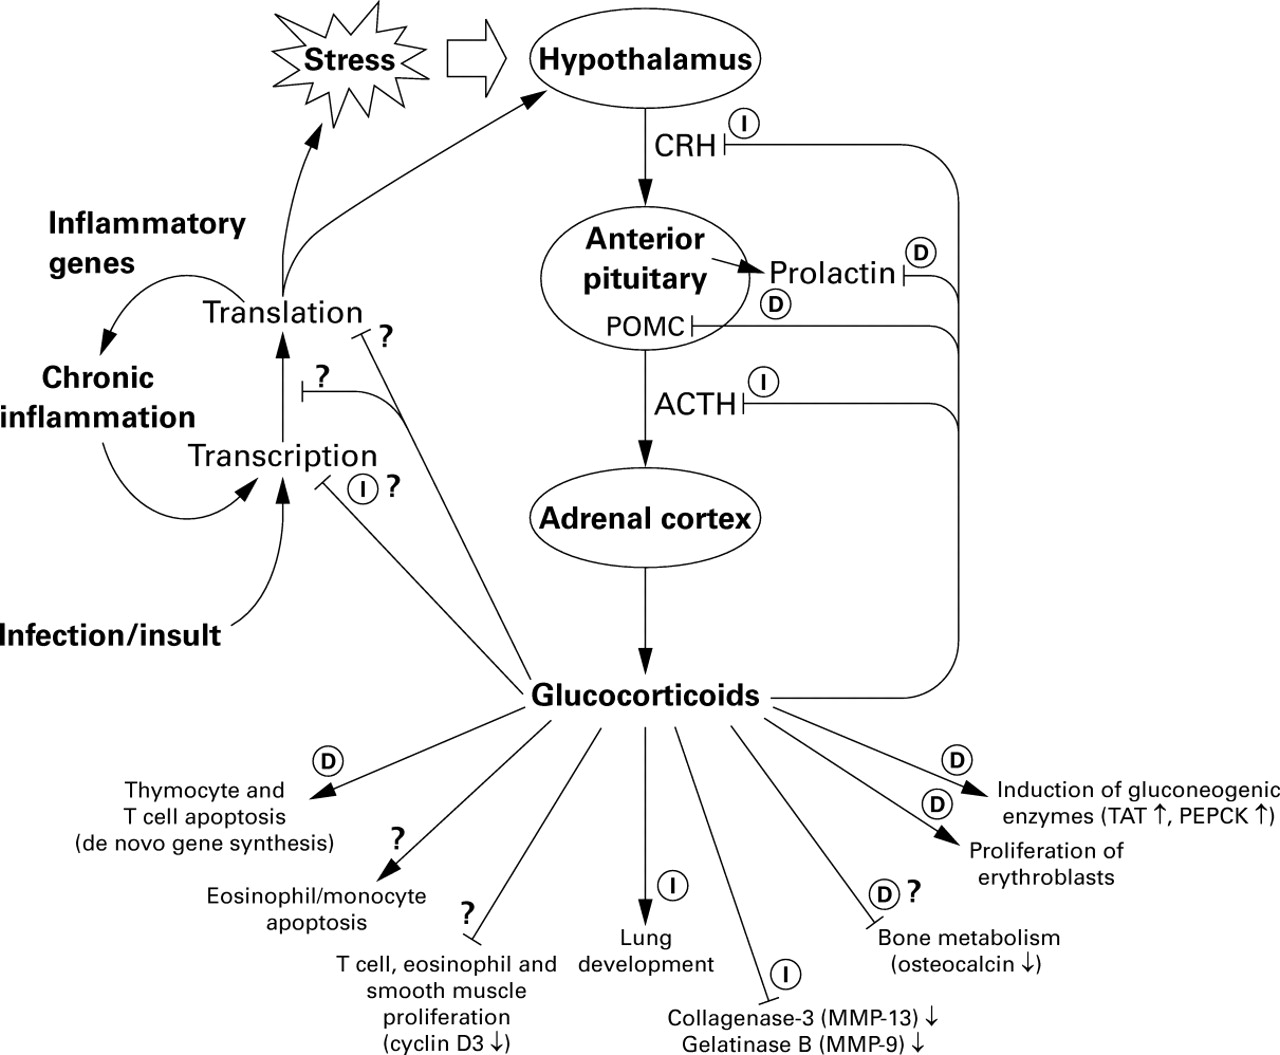 molecular mechanisms of glucocorticoid action  what is important